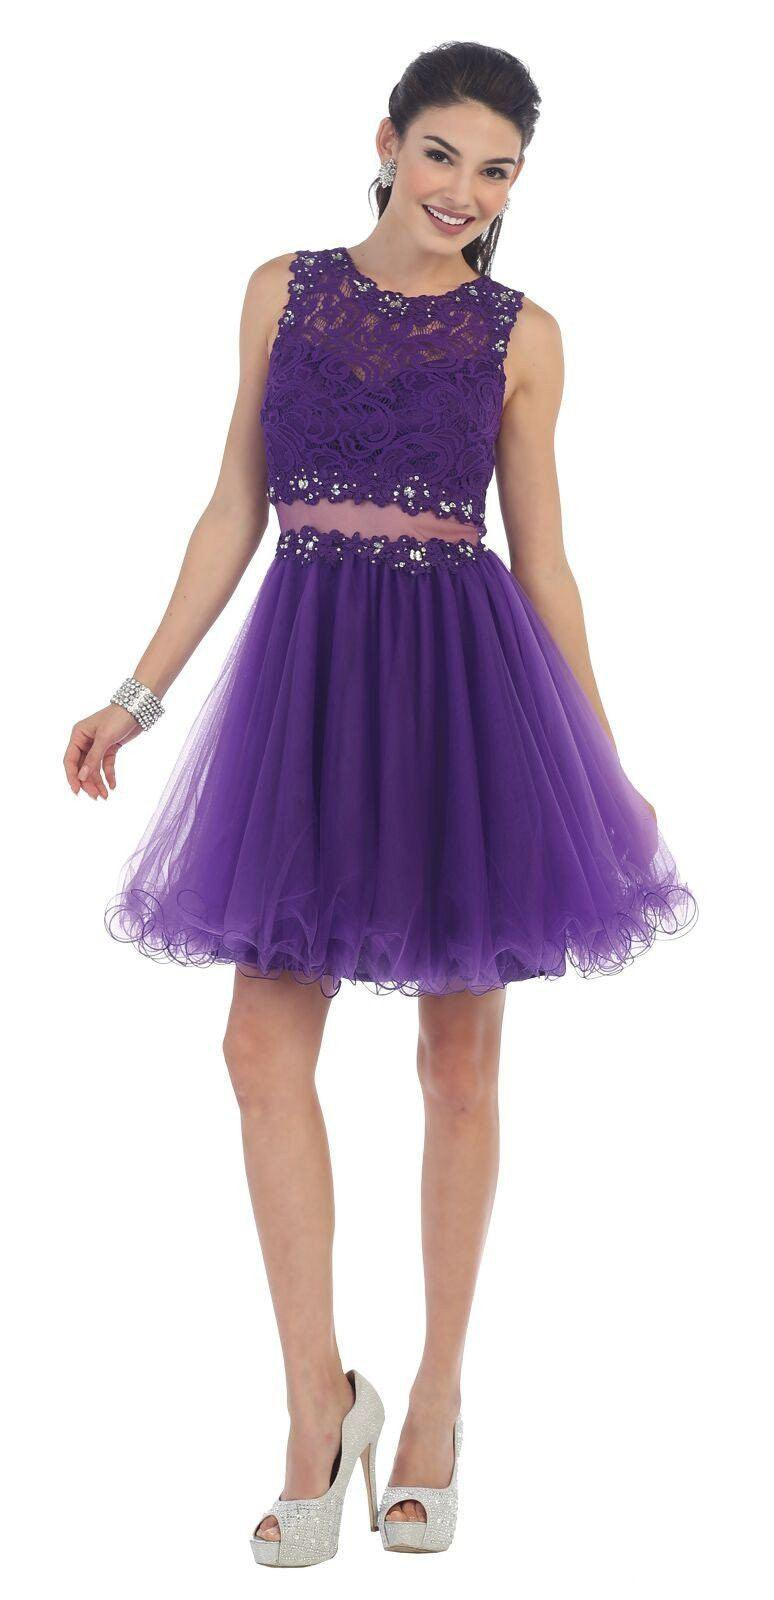 Short Homecoming Two Piece Set Dress Prom Cocktail Party ...